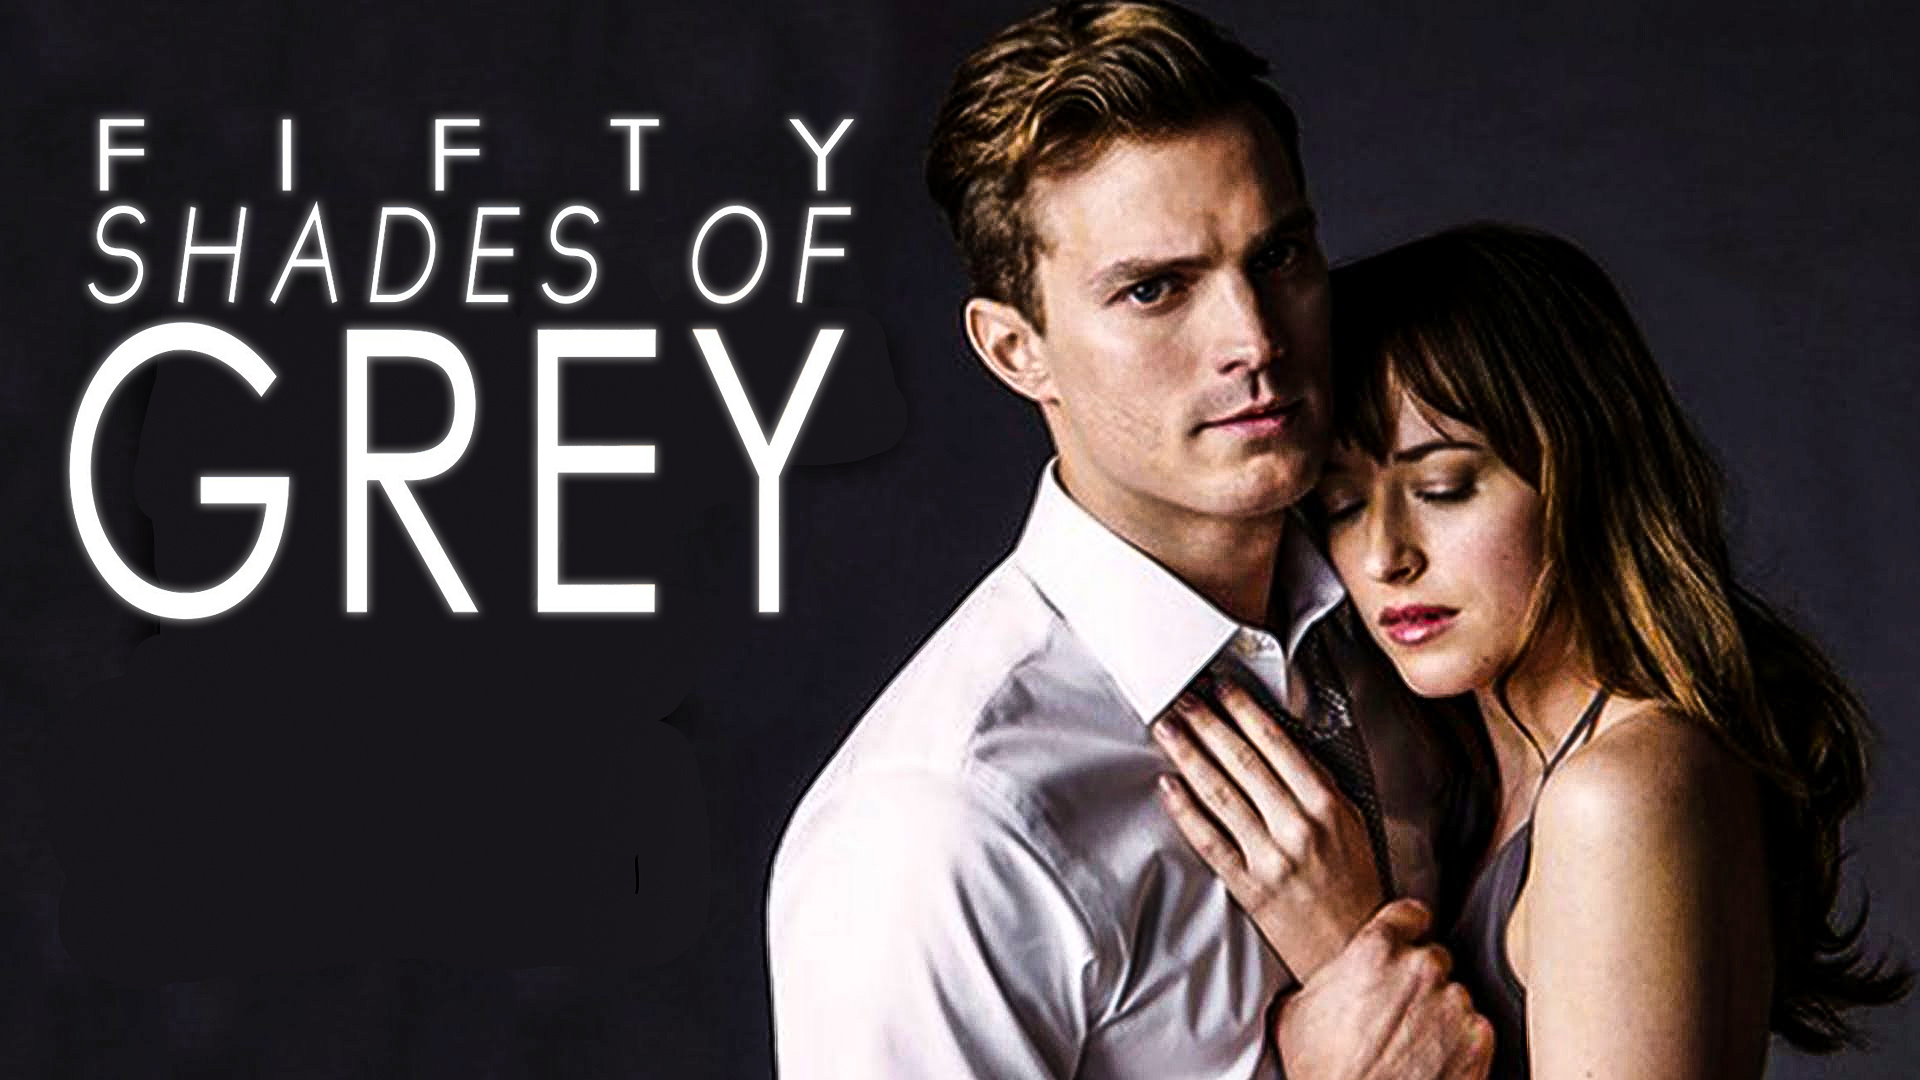 Fifty shades of grey wallpaper wallpapersafari for Fifty shade of grey